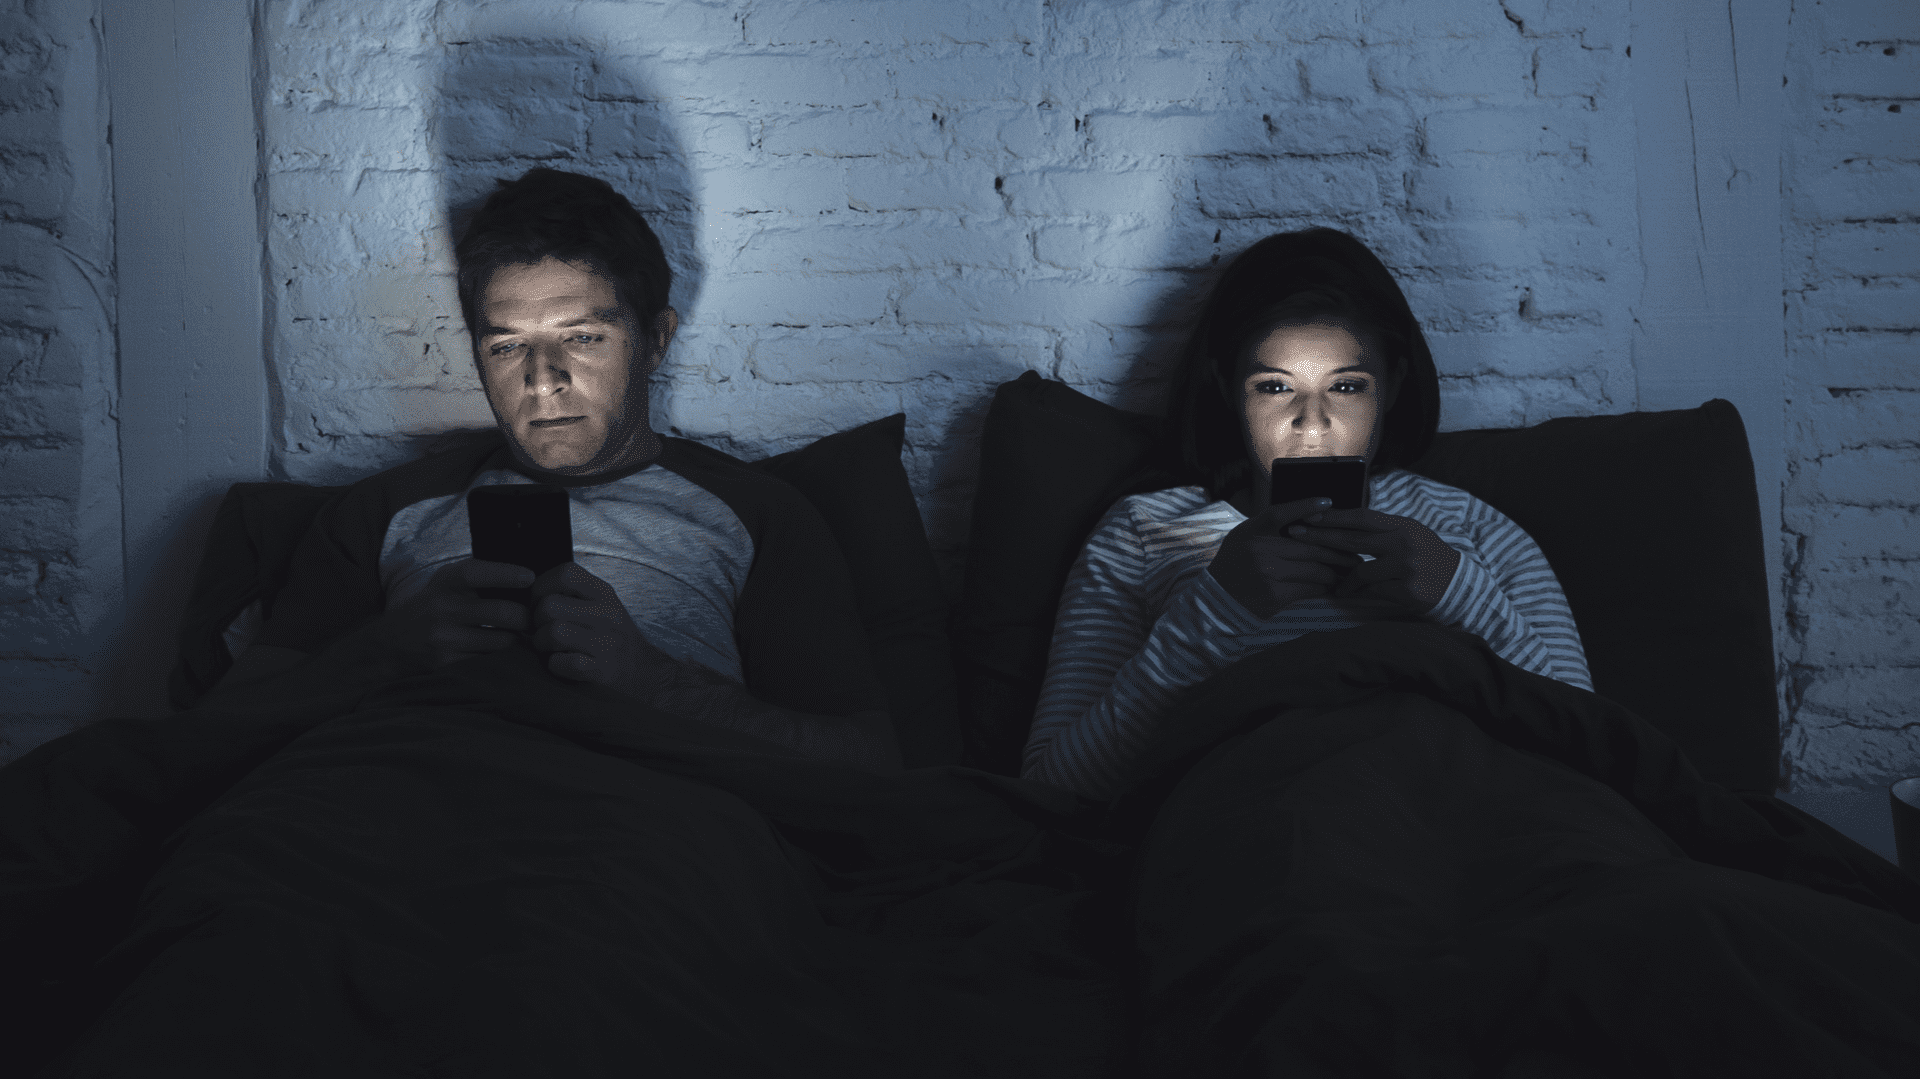 Couples Who Post About Their Relationship On Social Media Are Psychologically Problematic 1